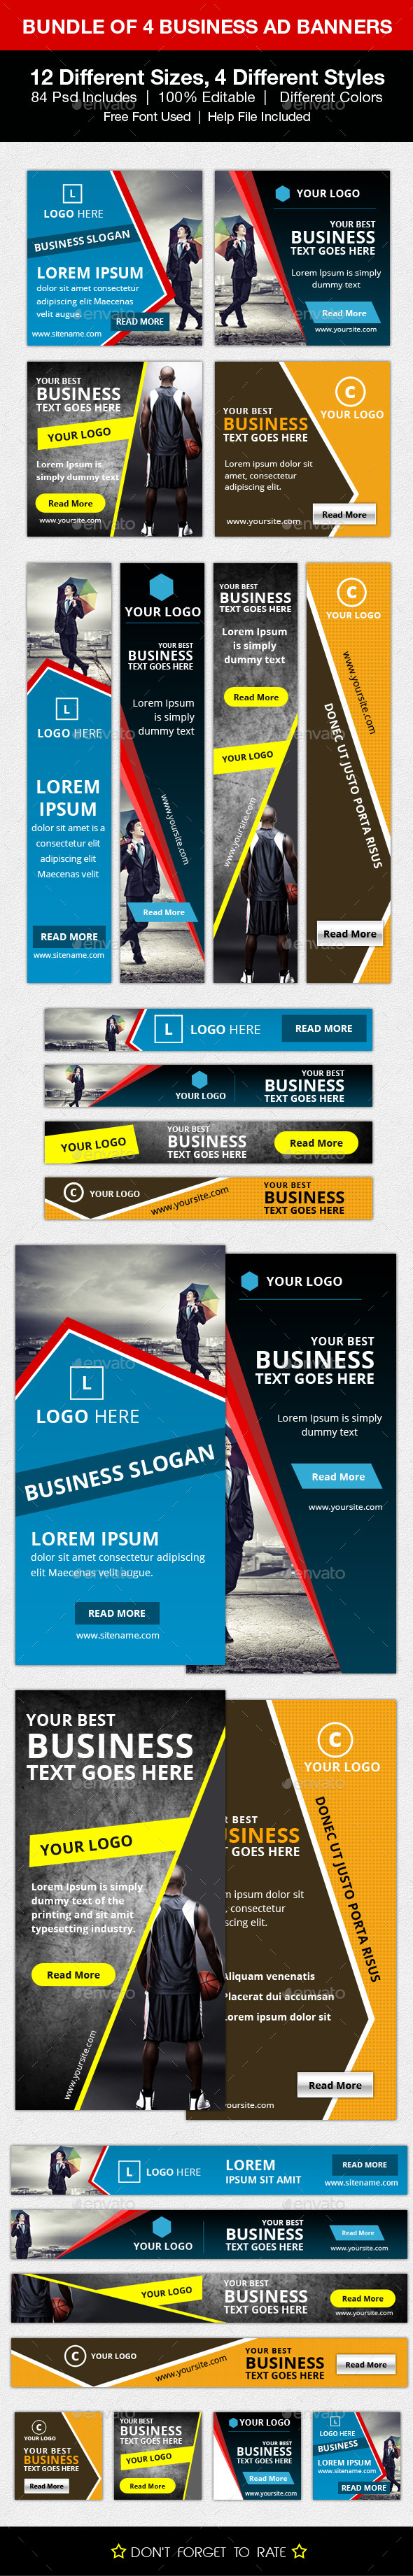 GraphicRiver Bundle of 4 Business Ad Banners 10469946